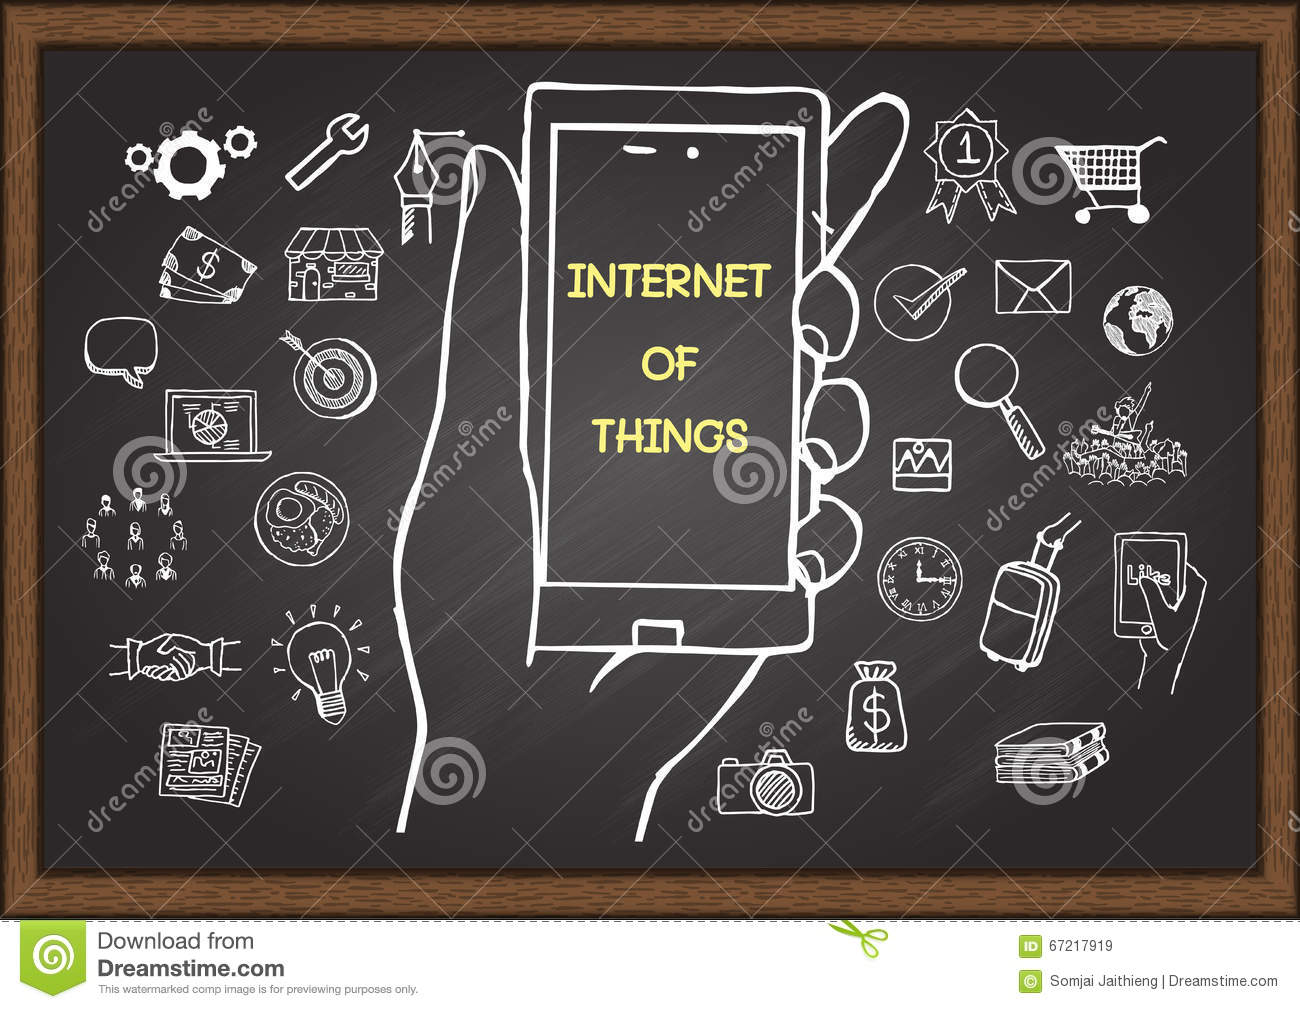 Hand drawn icons of internet of things, mobile marketing or digital marketing concept on chalkboard